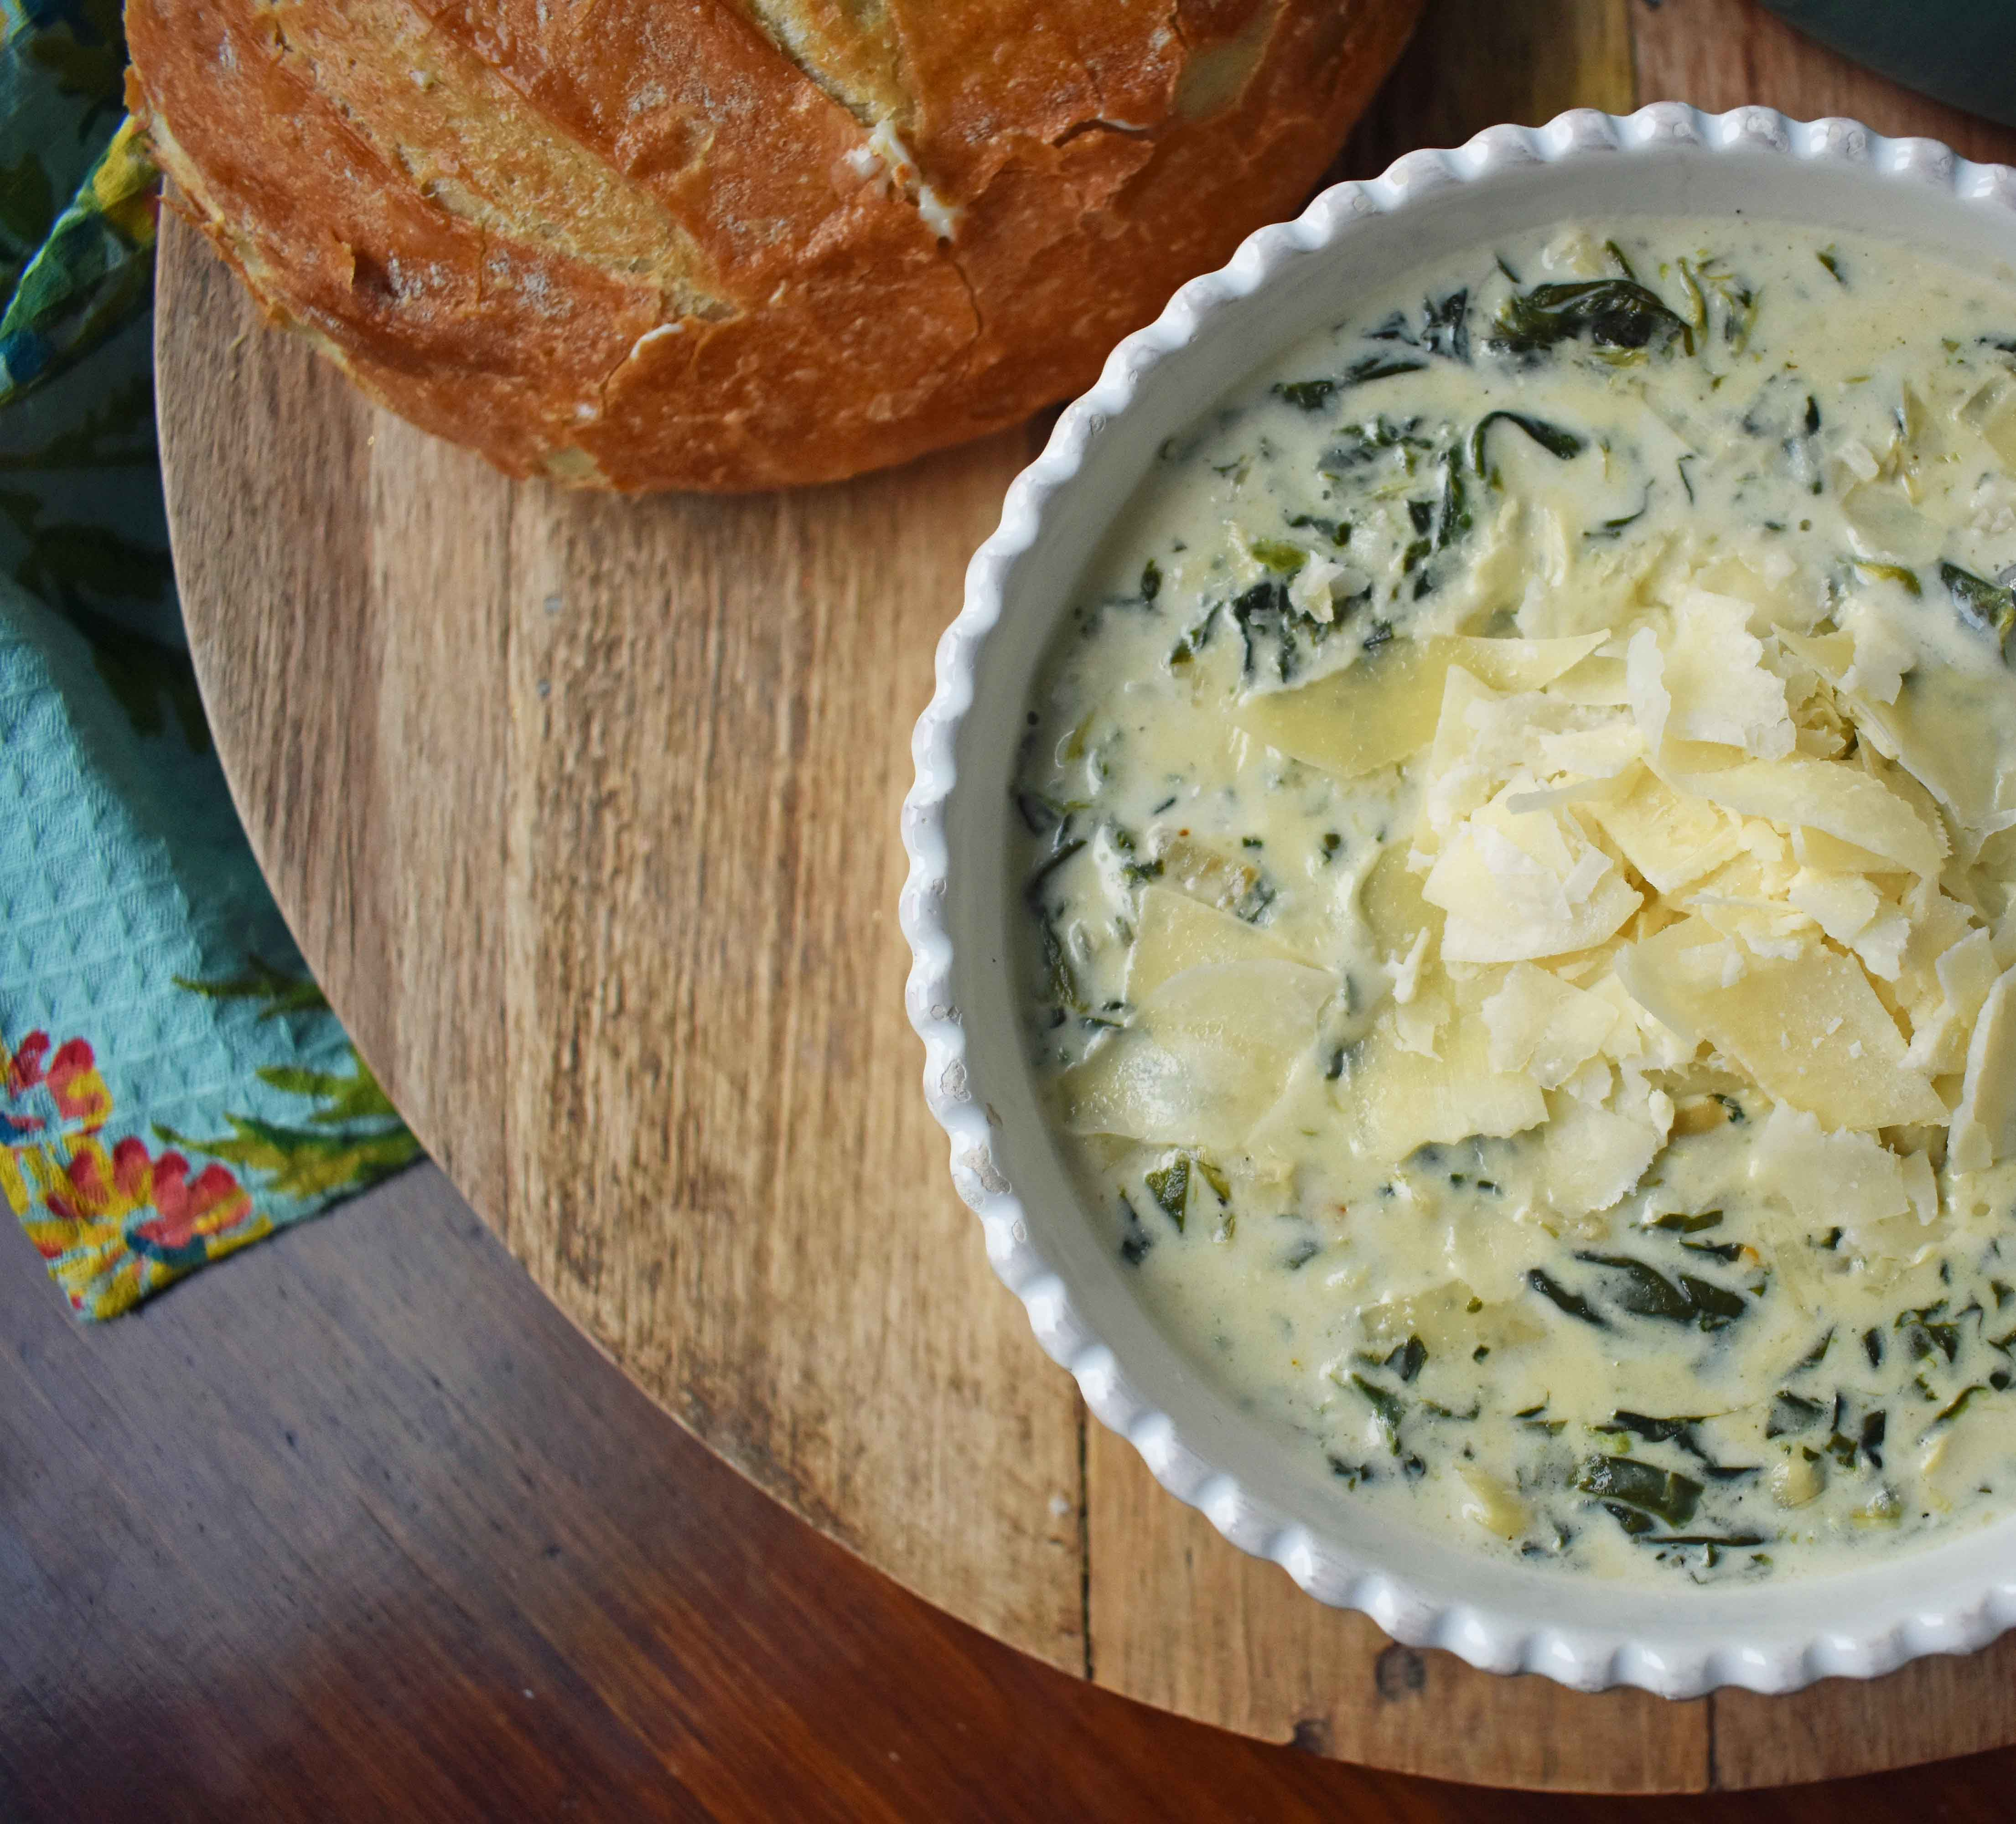 Creamy Spinach Artichoke Soup by Modern Honey. Rich and creamy parmesan cheese cream soup with spinach and artichokes. Perfect soup for a cold winter's day. www.modernhoney.com